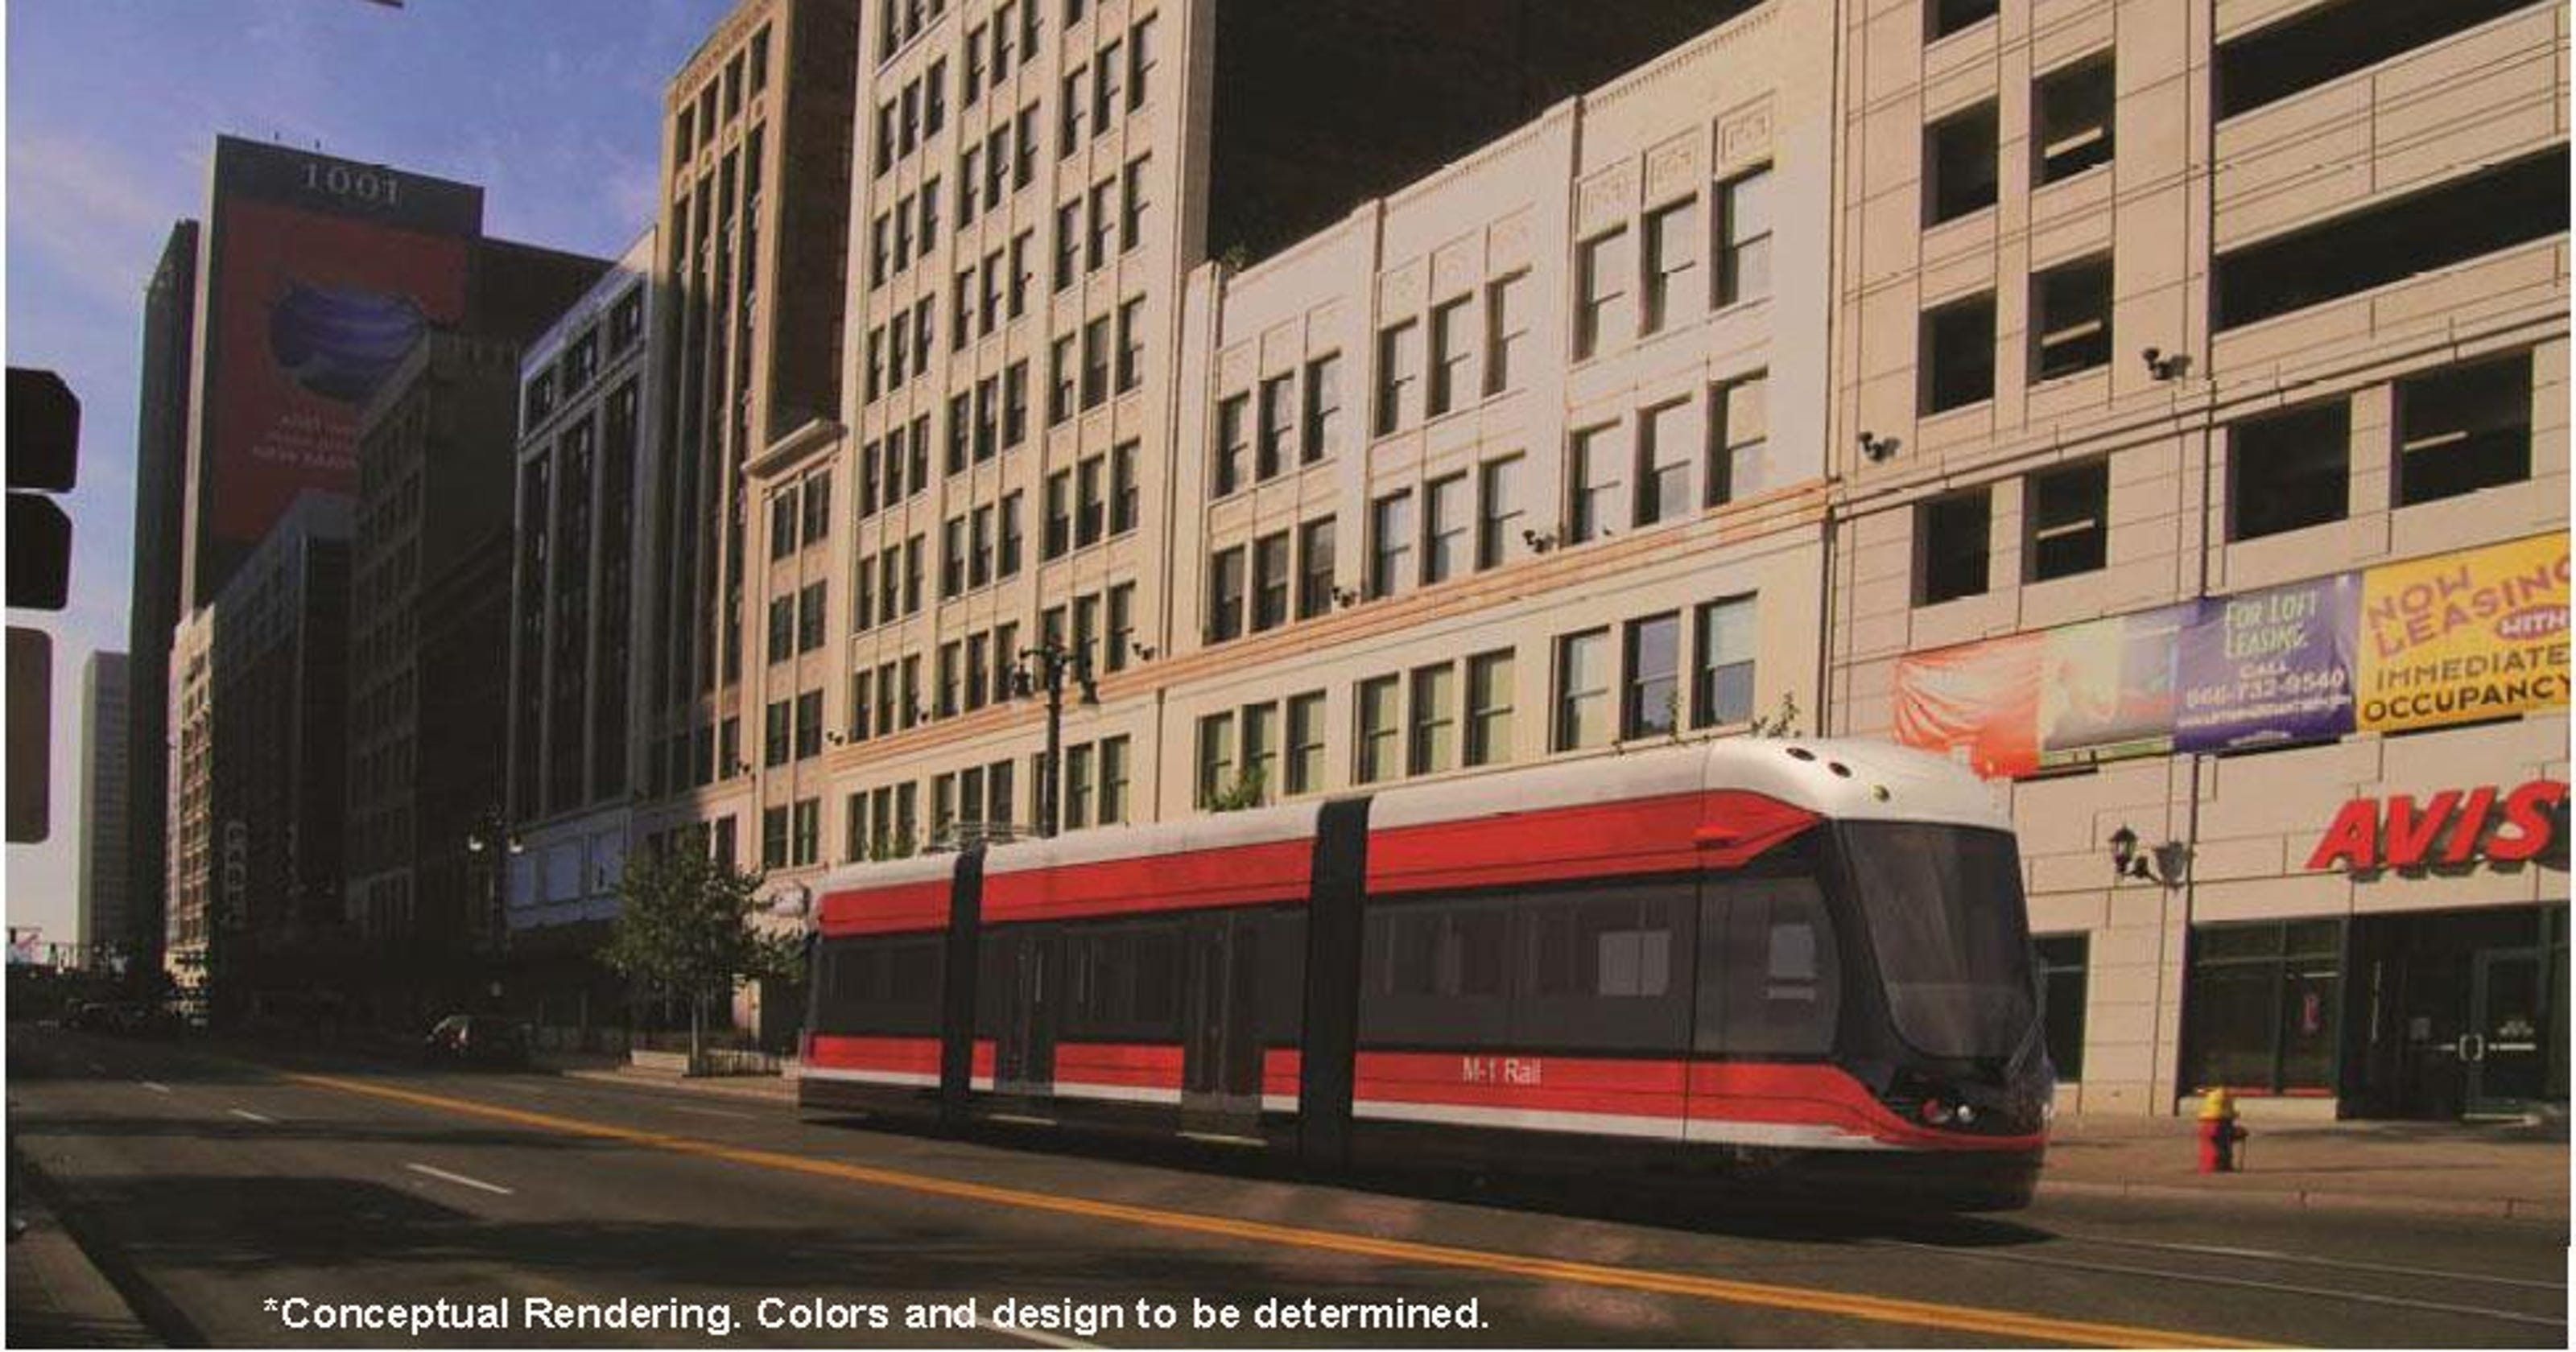 M-1 Rail buying 6 off-wire streetcars for $32M